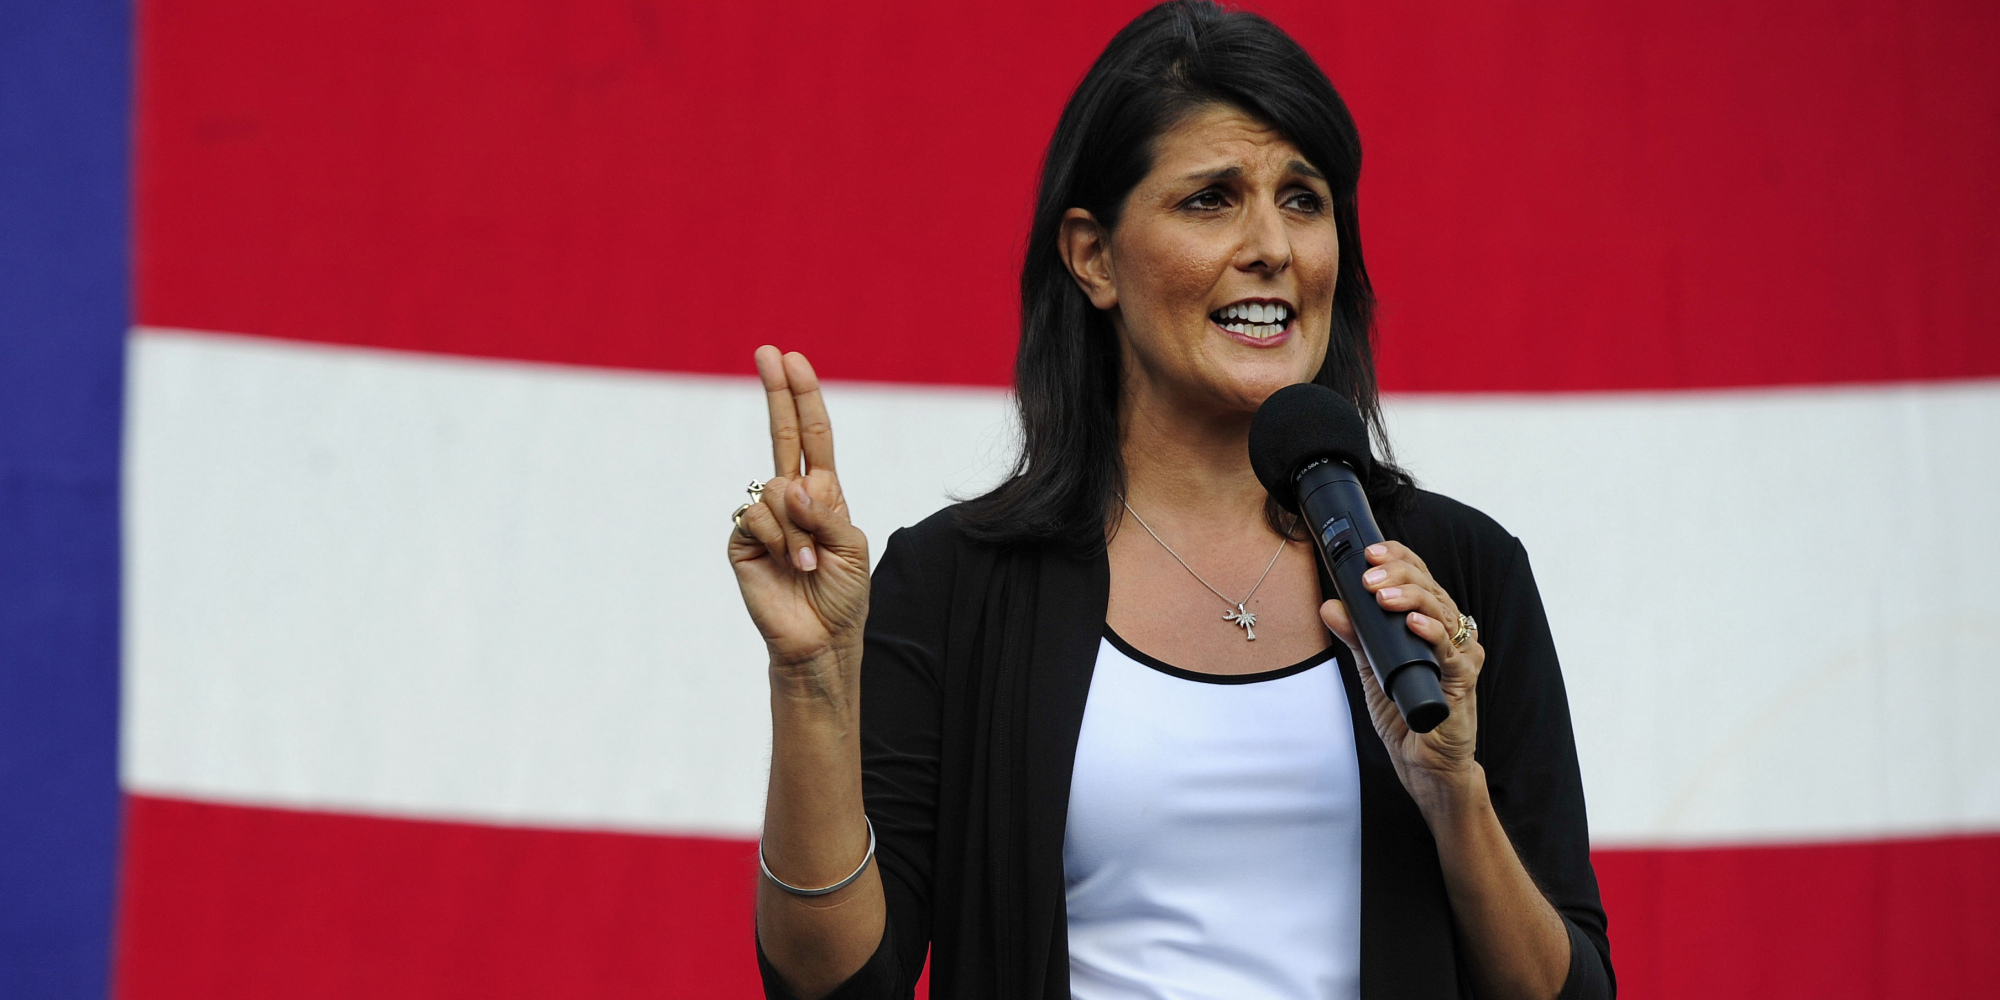 Report: Nikki Haley Lives in Opposite Land Where Trump Tells the Truth and She's Smart